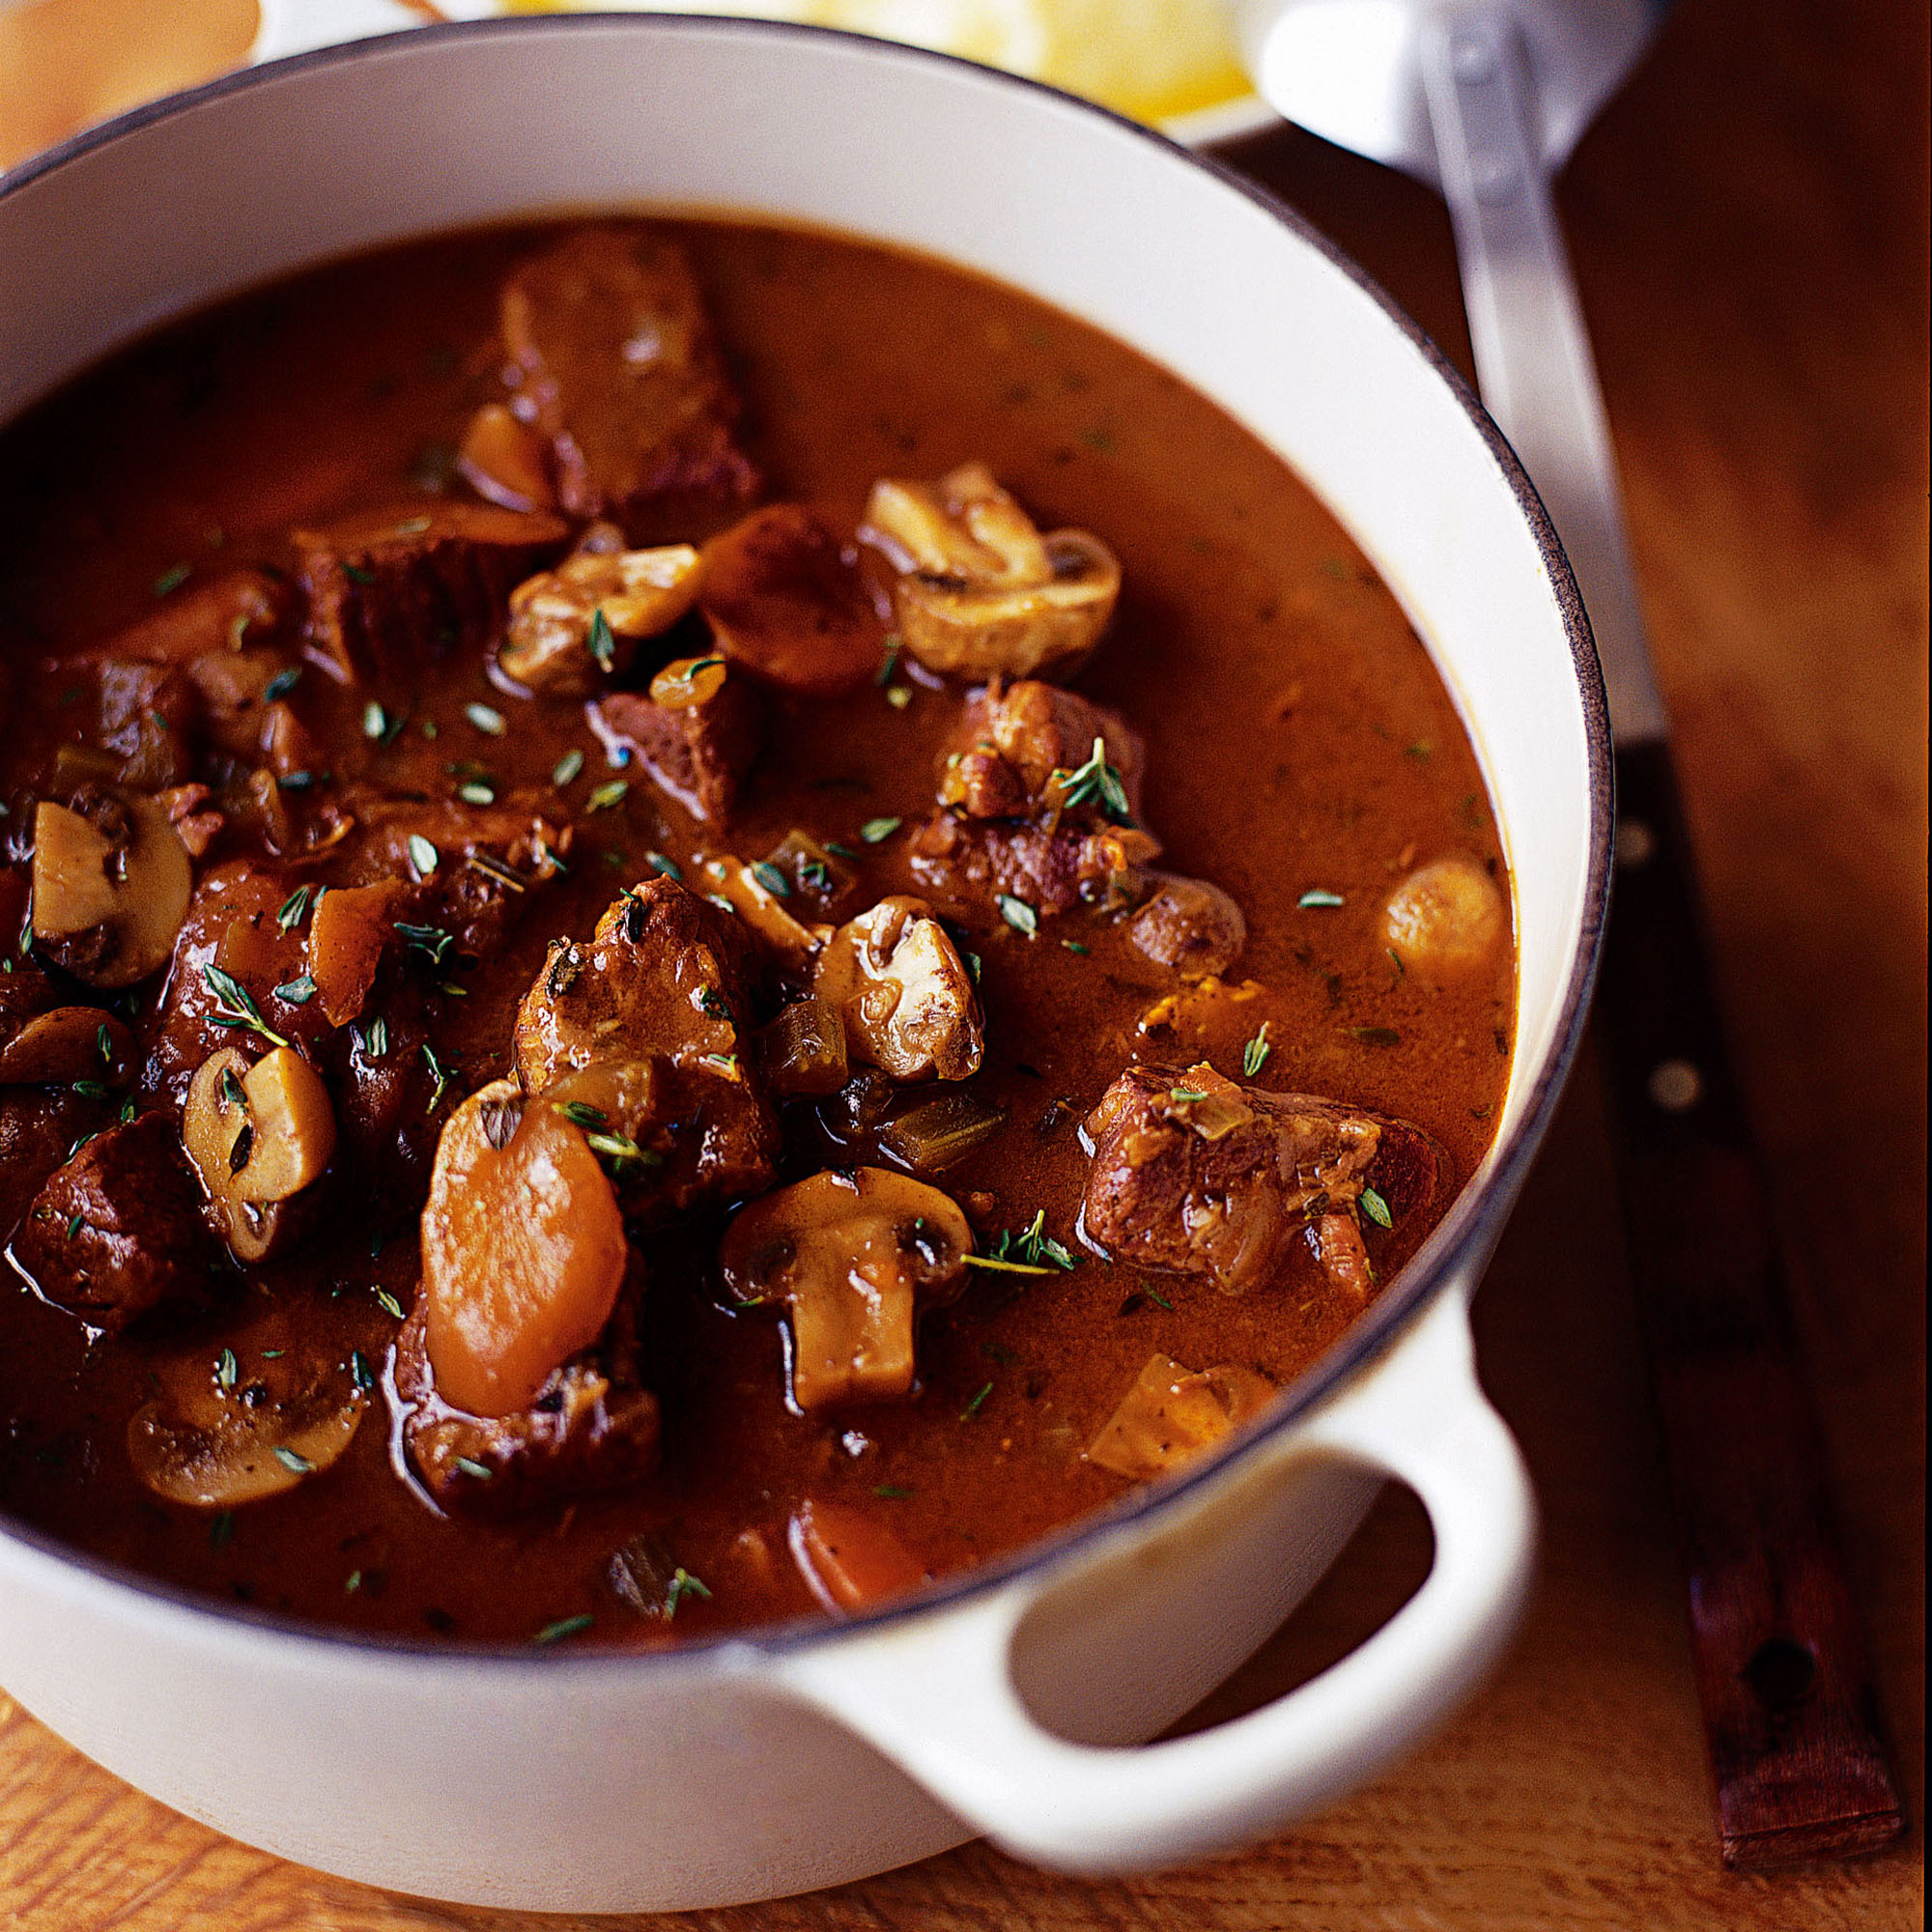 Beef, mushroom and thyme casserole recipe